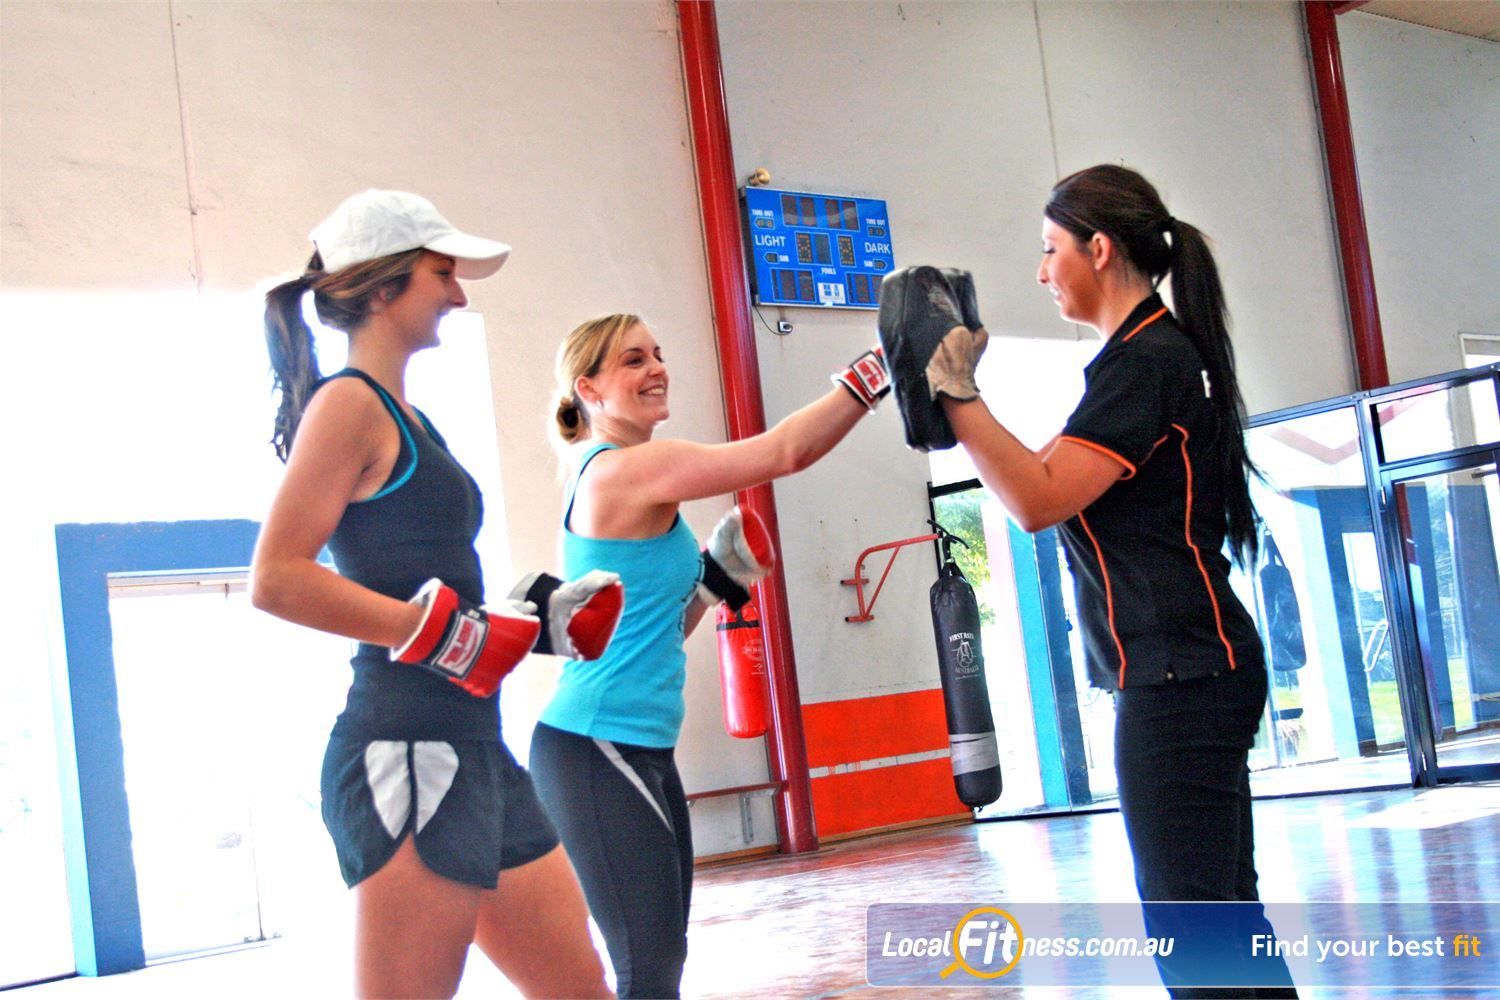 South Pacific Health Clubs Williamstown Basic Beginners Boxercise classes also available!